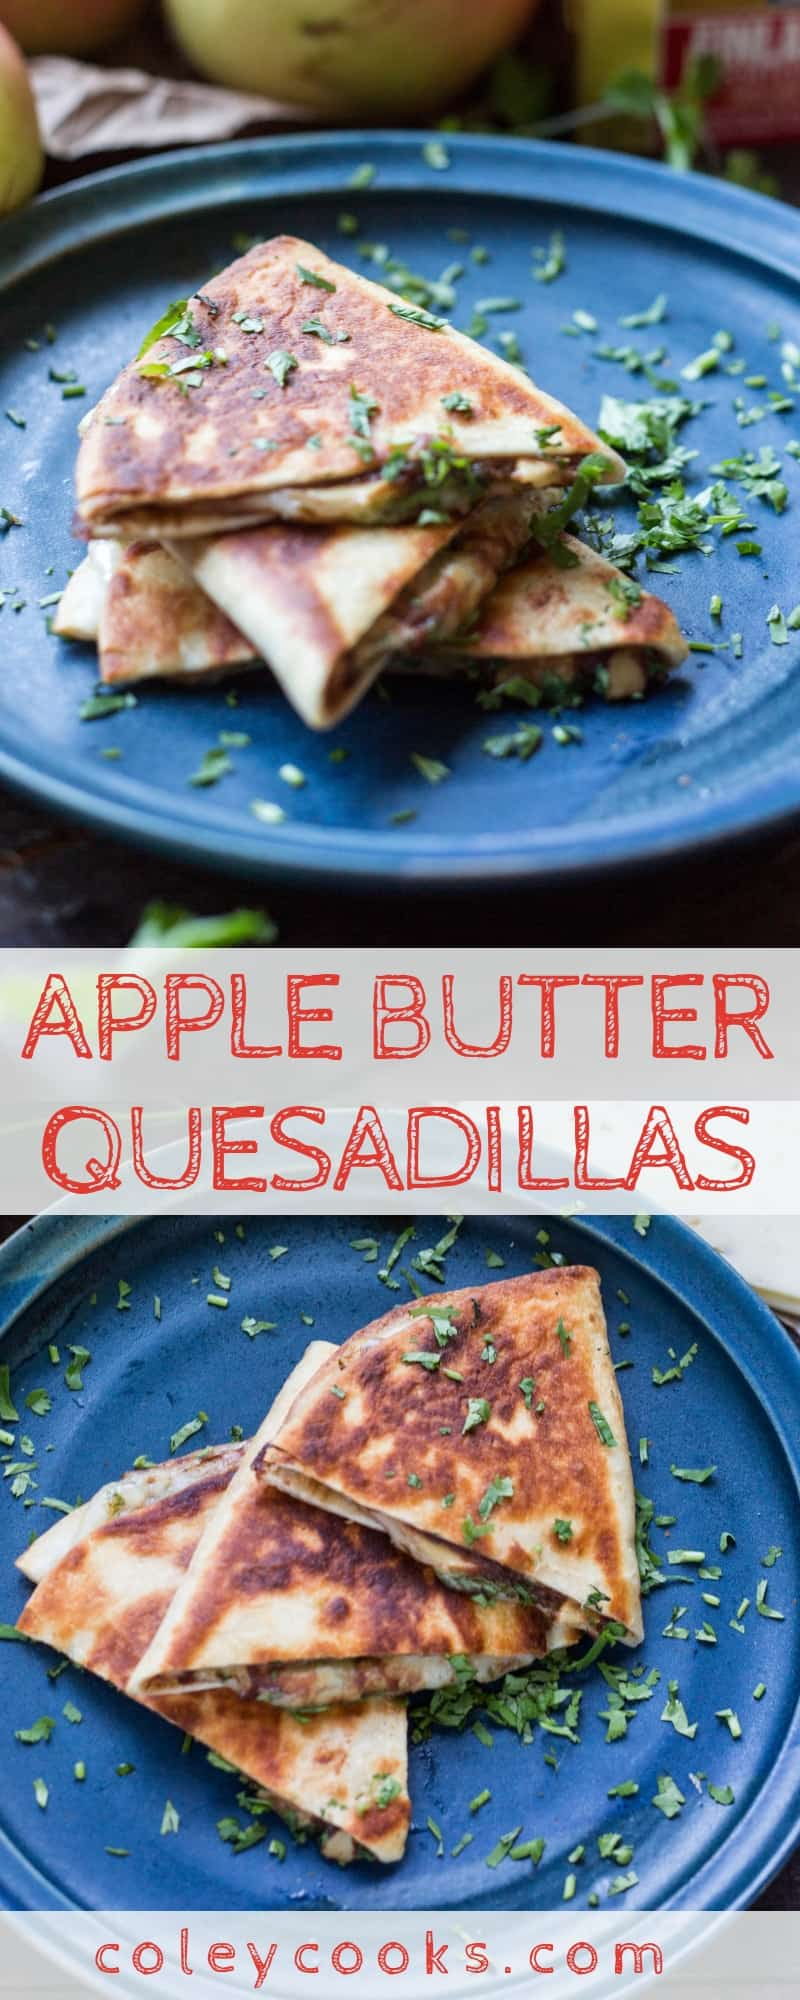 APPLE BUTTER QUESADILLAS | This quick and easy recipe is a sweet, salty, and addictive snack! Great for kids as lunch or an after school snack!. #easy #apple #applebutter #quesadilla #pepperjack #snack #afterschool #kids #recipe | ColeyCooks.com